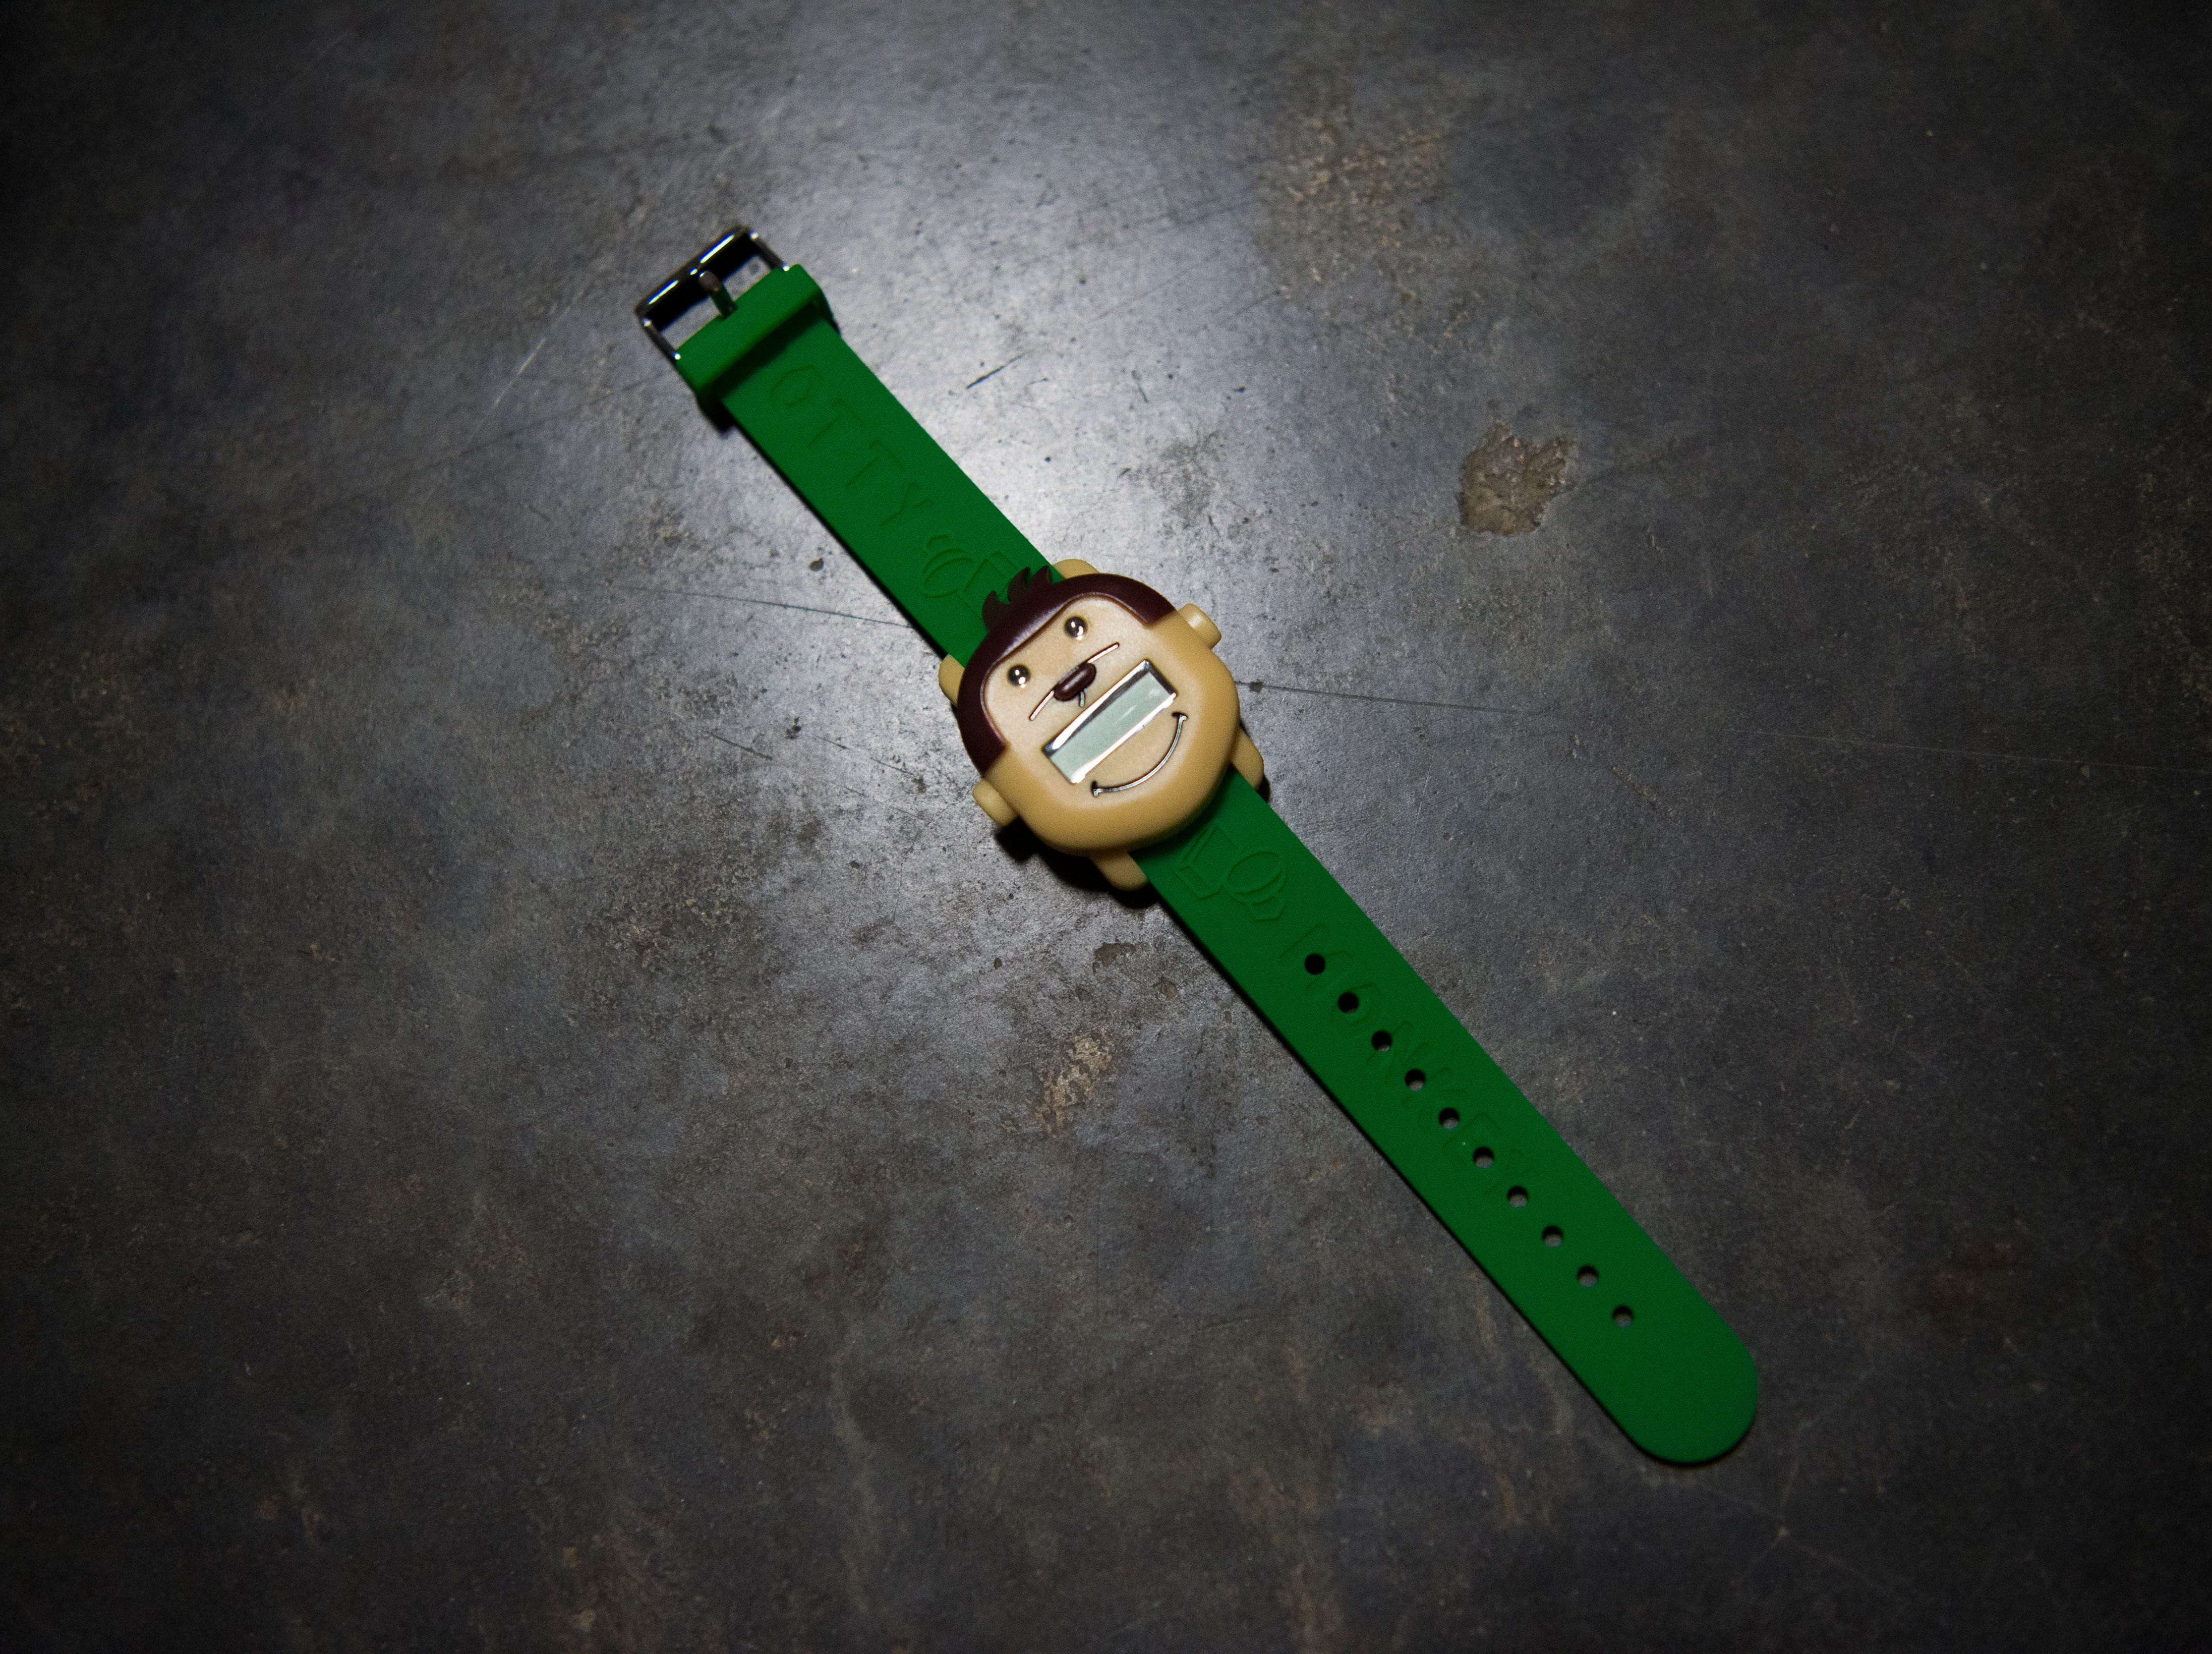 A photo of the Potty Monkey Watch at PottyMD in West Knoxville Tuesday, Feb. 12, 2019. The local company manufactures watches to help potty train children and other members of the population.